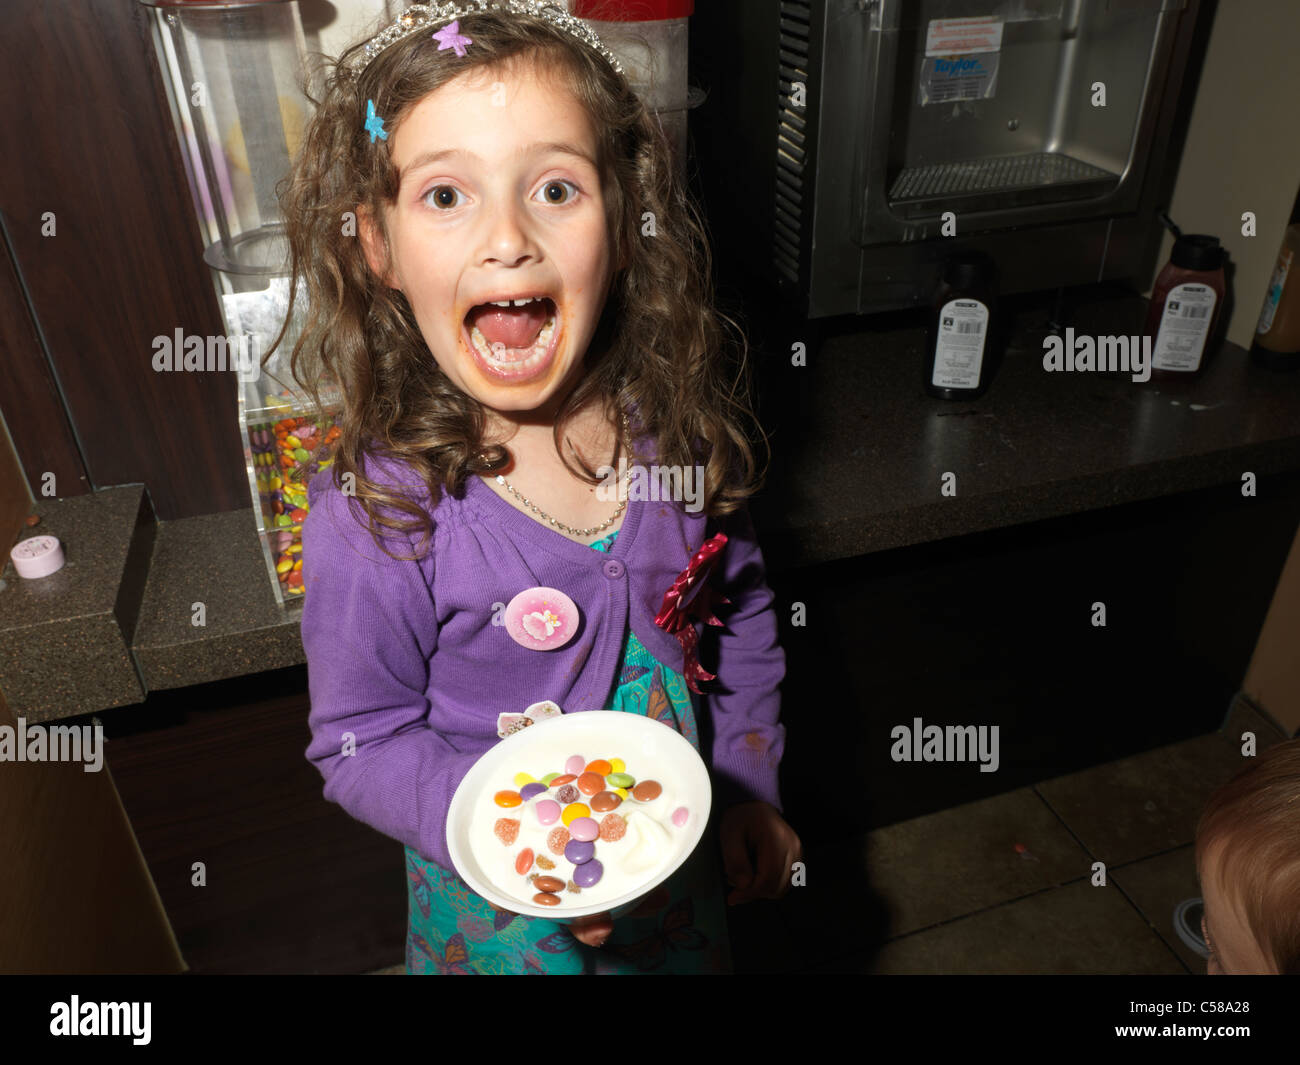 Childrens Birthday Party In Pizza Hut Girl Holding Ice Cream In A - Childrens birthday parties pizza hut